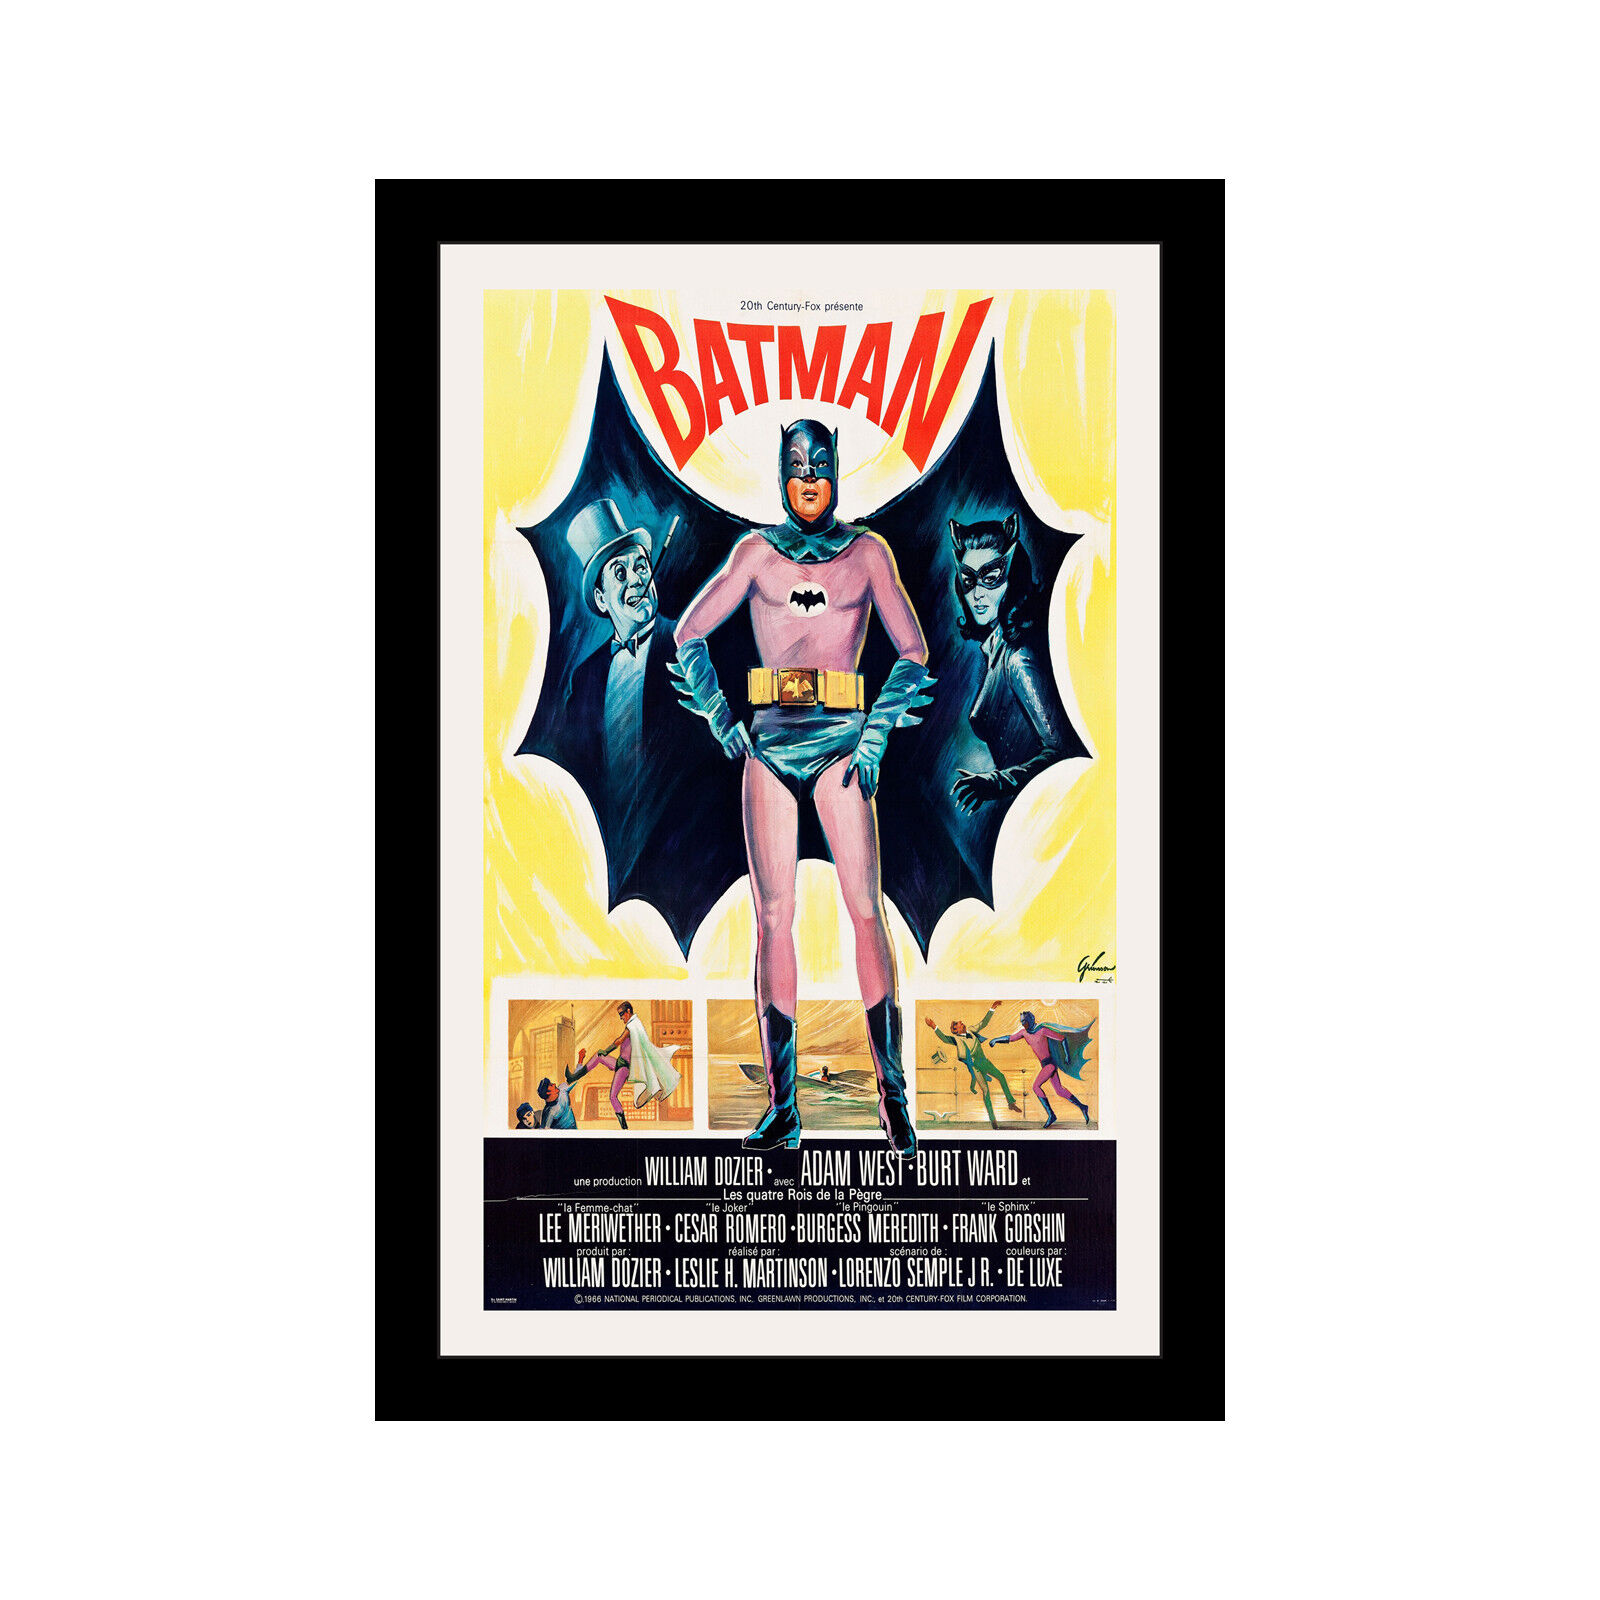 BATMAN (TV) - 11x17 Framed Movie Poster by Wallspace